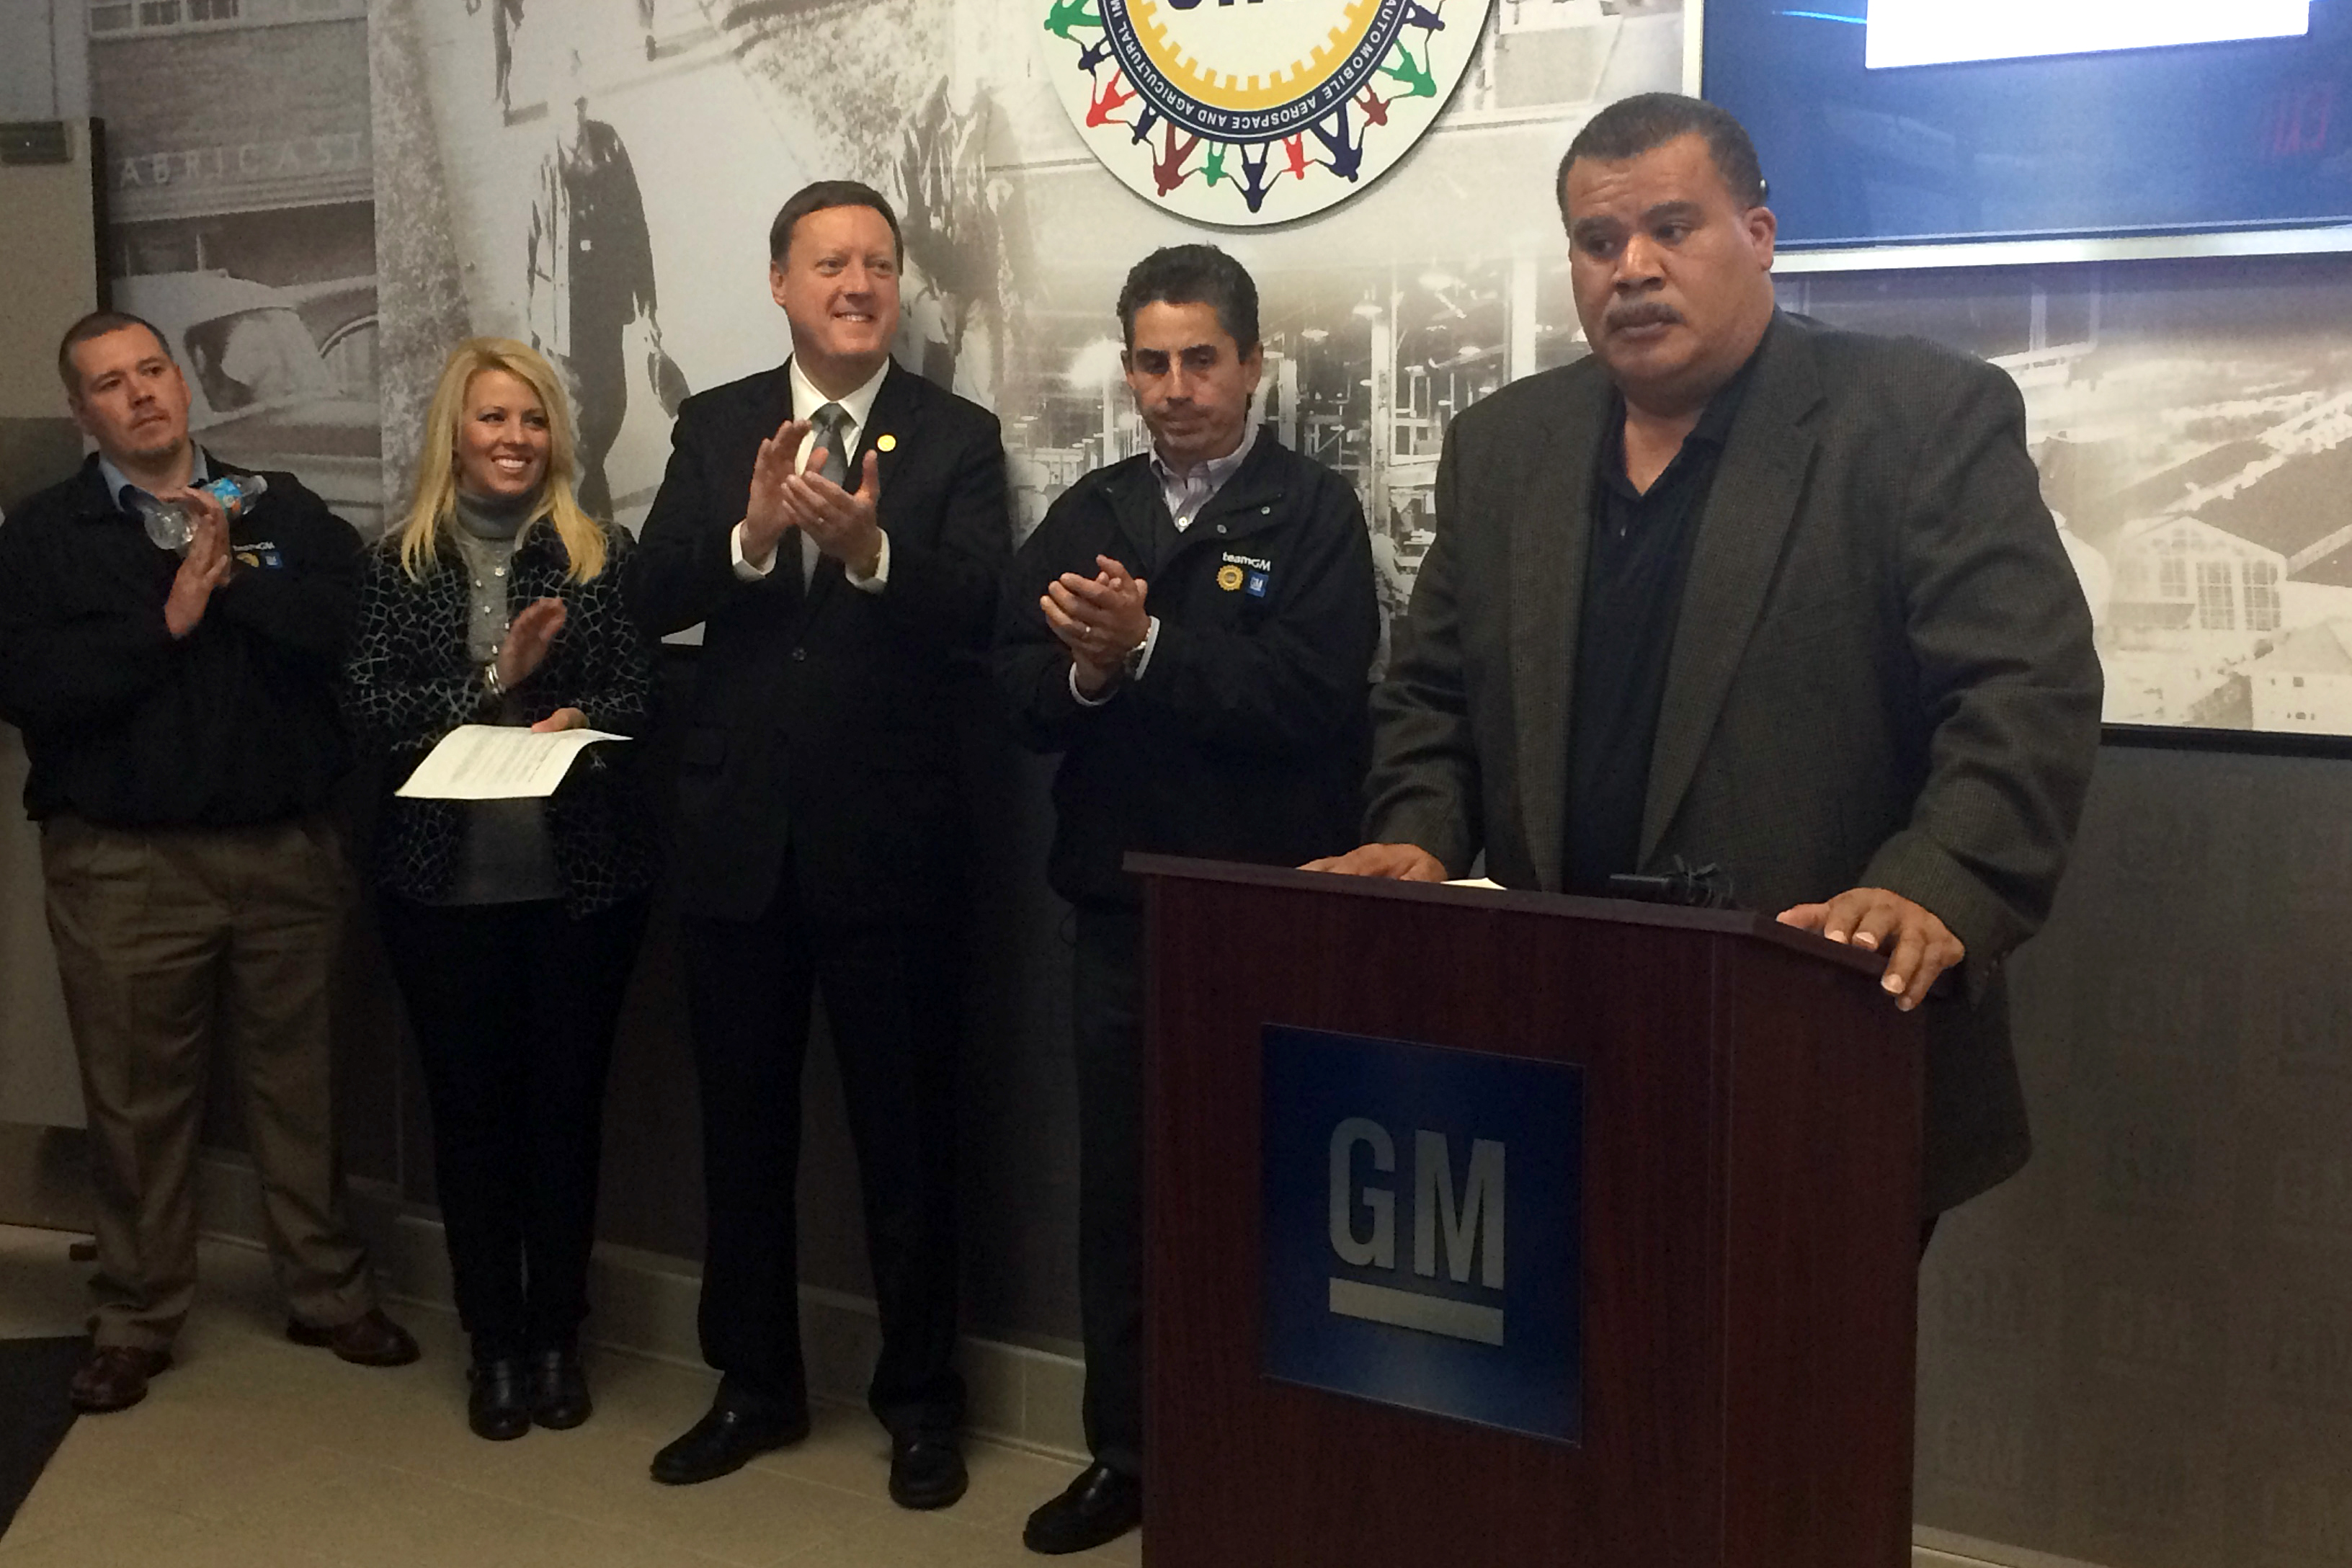 GM announcement in Bedford plant